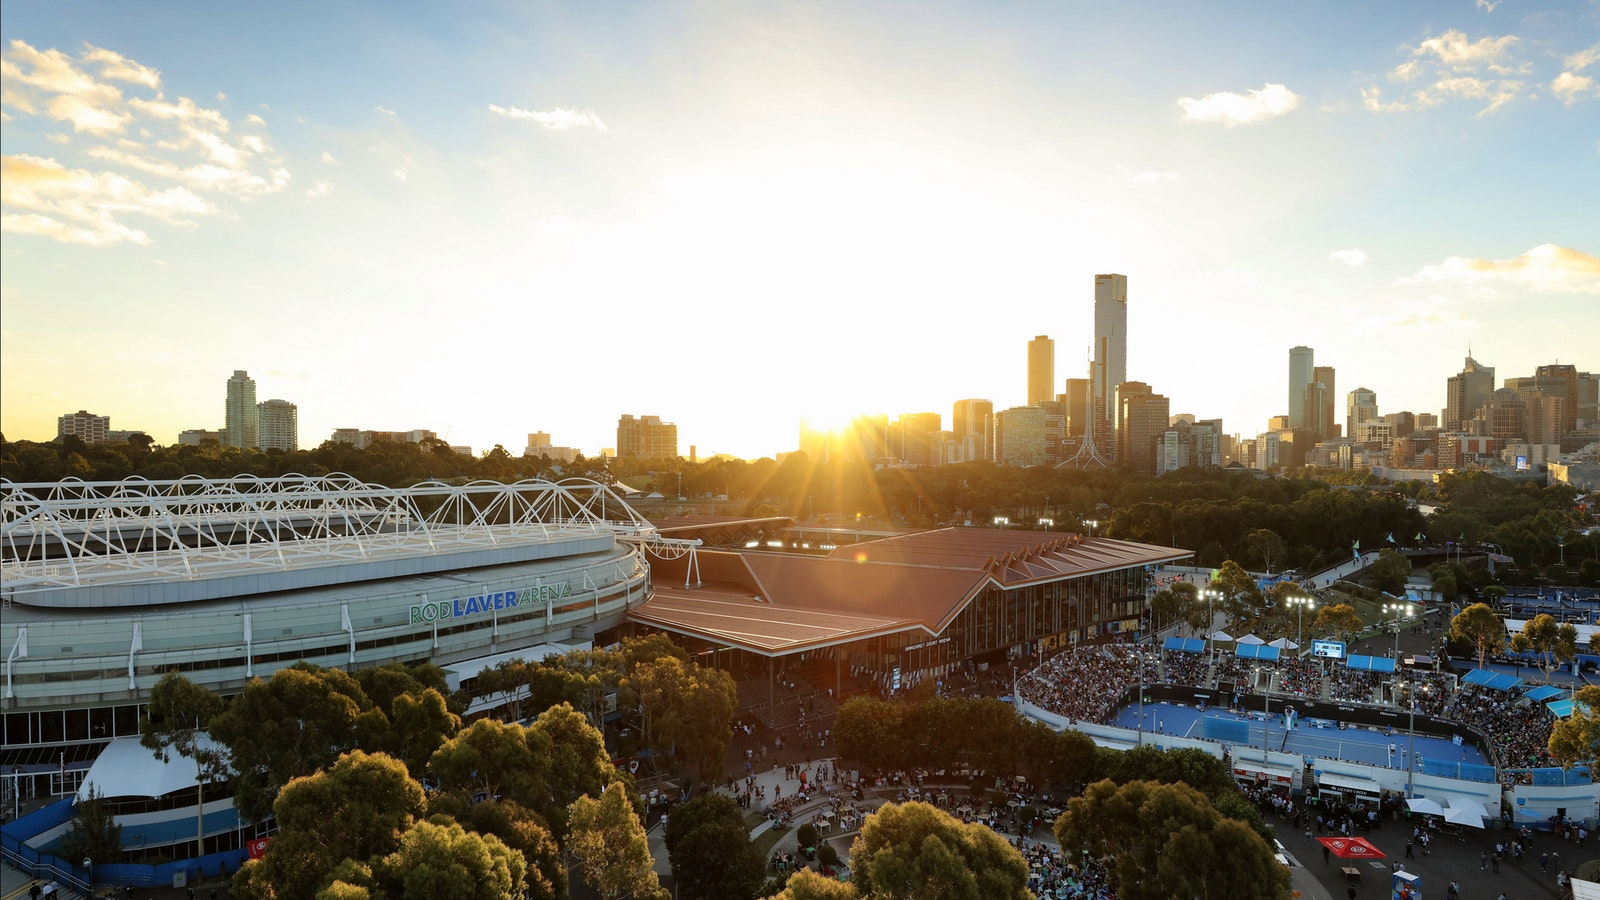 Experience the best Australian summer at AO 2018 with hot tennis action and balmy Melbourne nights